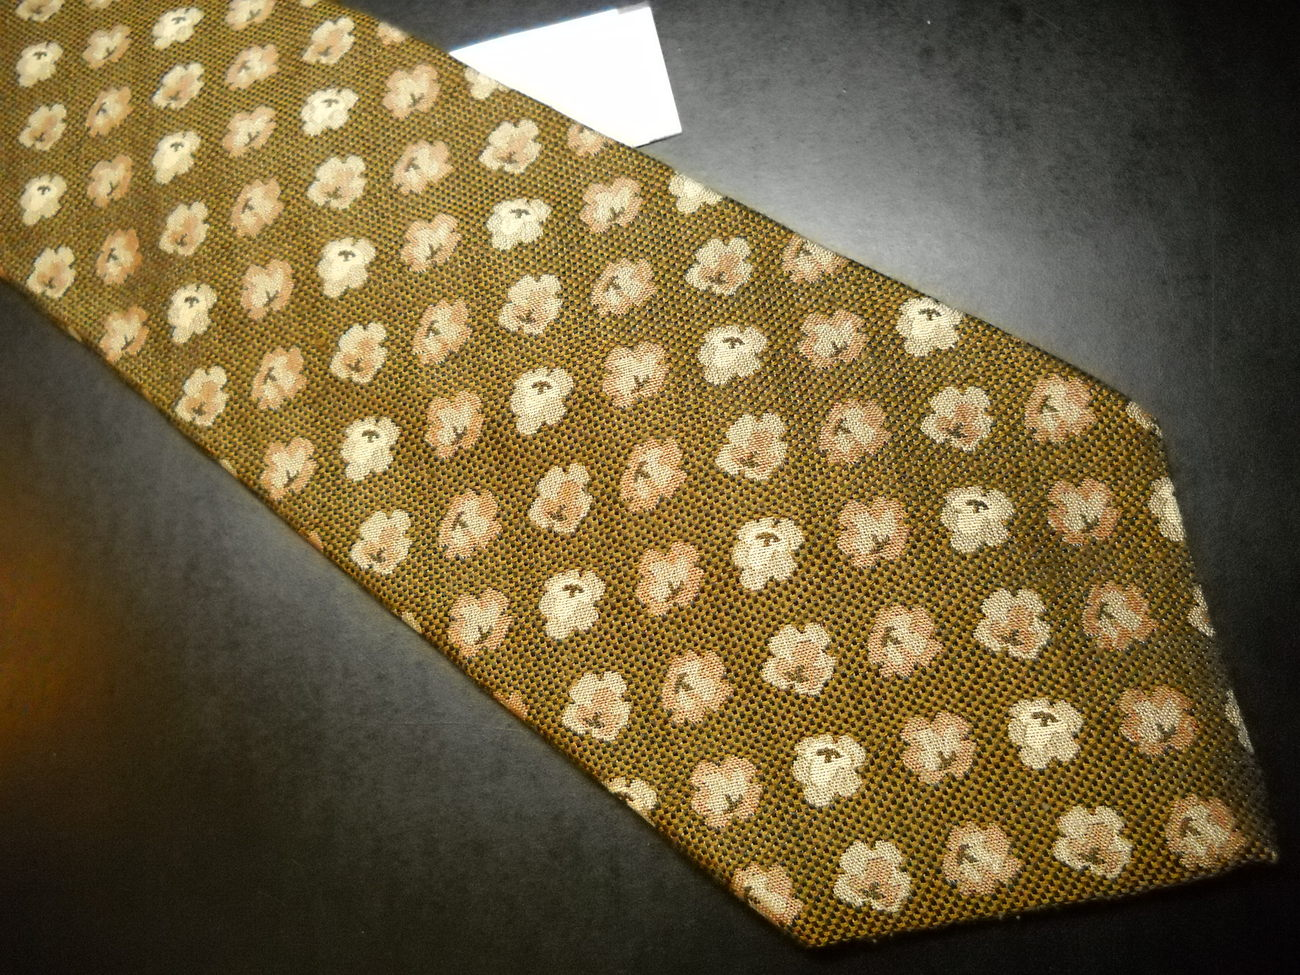 American Outfitter Neck Tie A Weave of Browns with Popcorn Accents Imported Silk